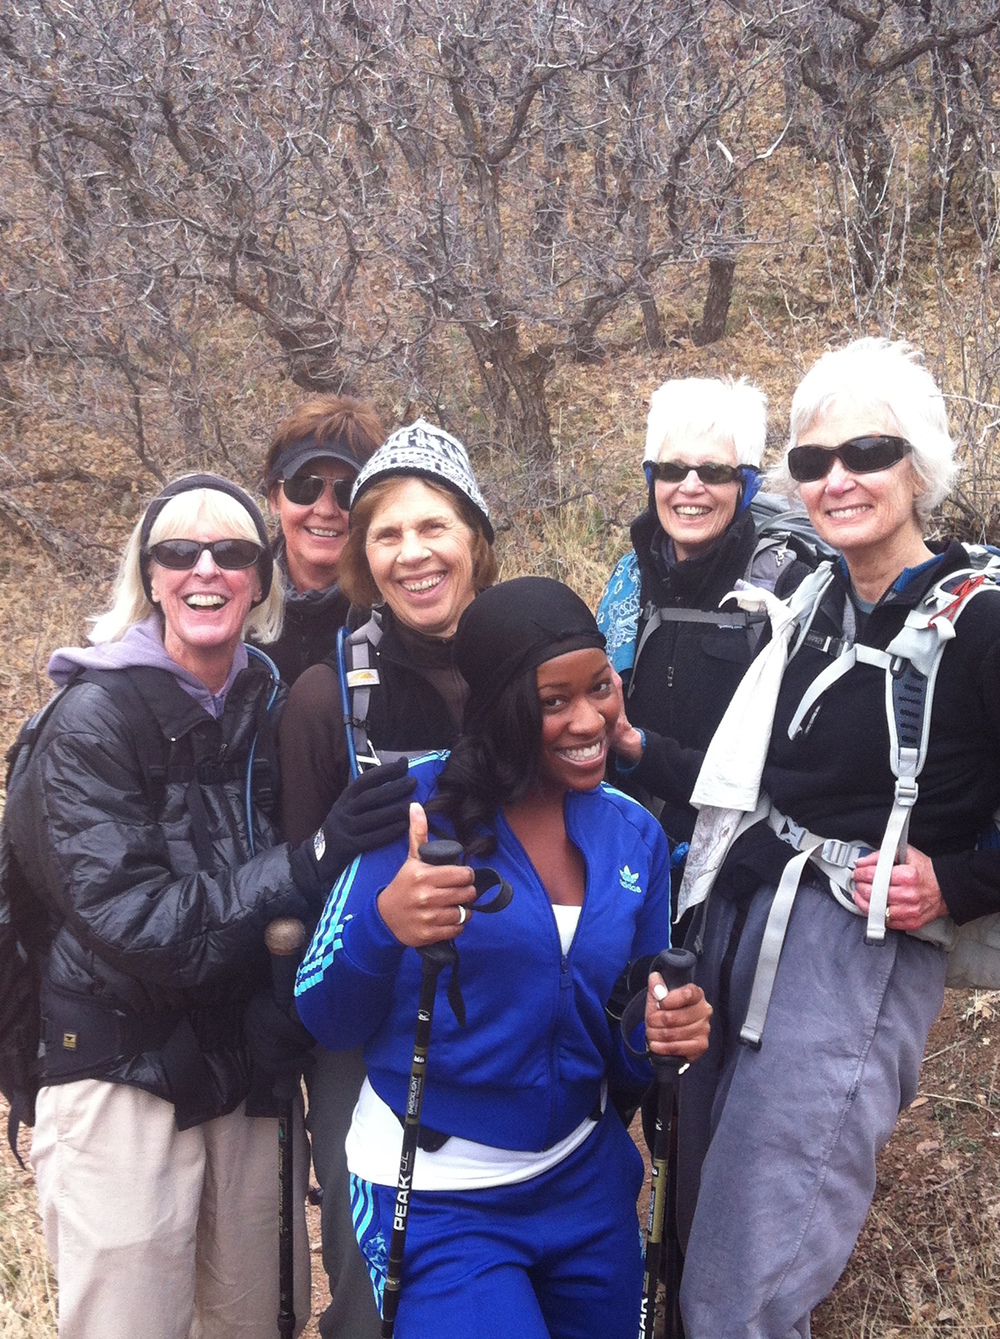 Me (dressed ALL WRONG) and some experienced hikers during a hike up Deer Creek Canyon Park, in Denver, Colorado- November 2012